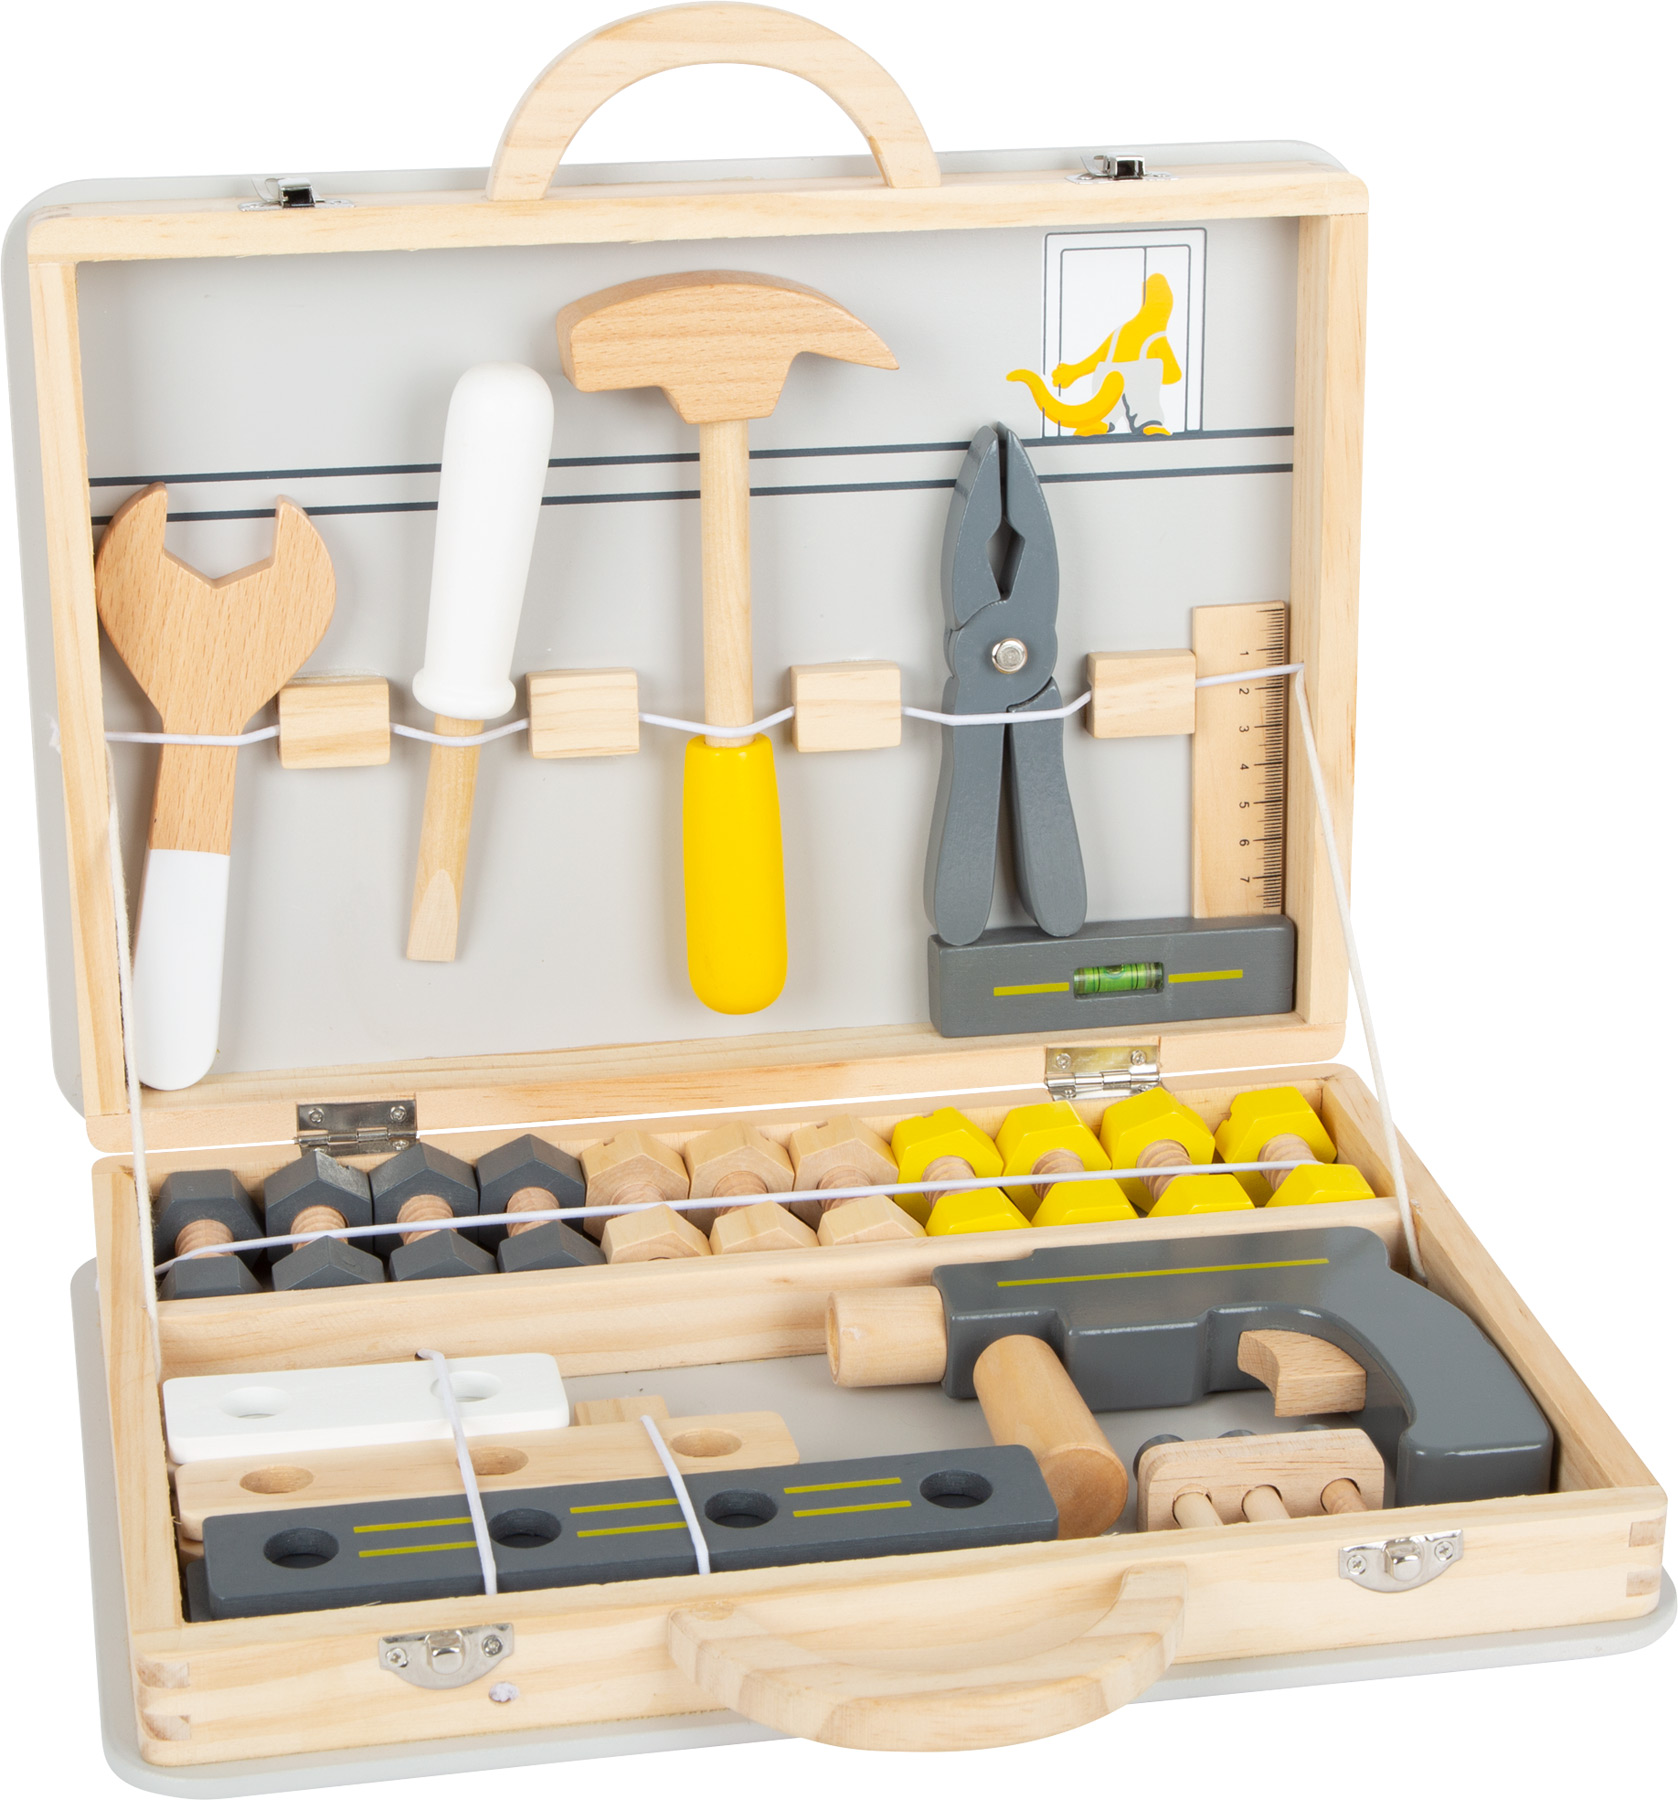 Wooden Play Toolbox with Tools